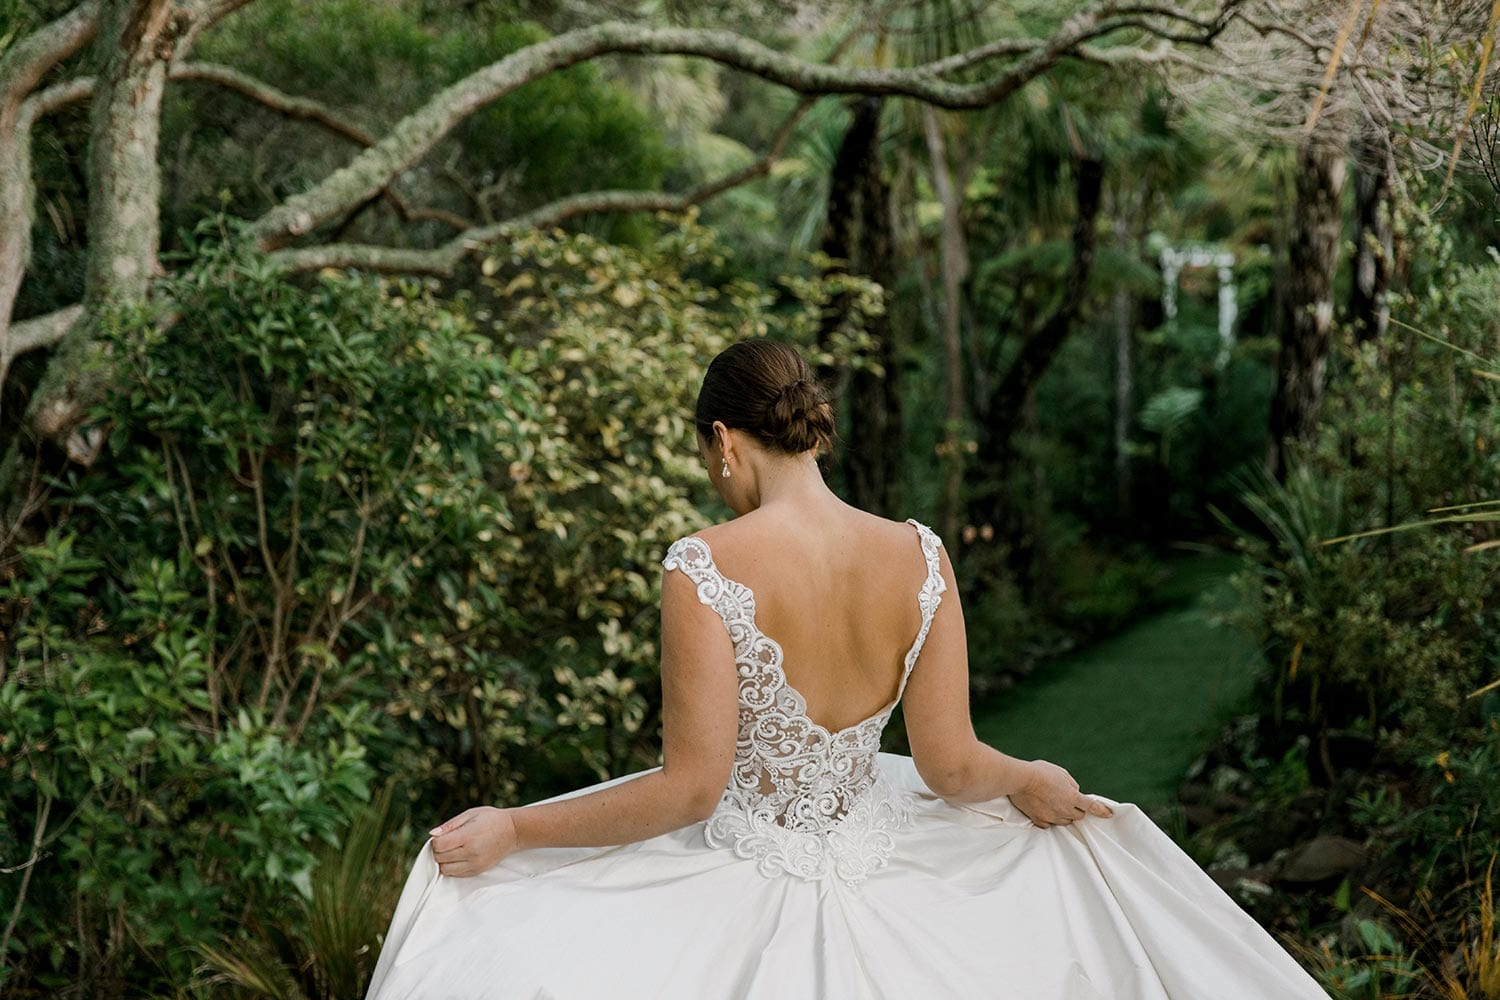 Ashleigh Wedding Dress from Vinka Design. Wedding dress with semi-sheer, richly embroidered fitted bodice on a nude base adorned with guipure lace. Dramatic silk dupion full skirt with side pockets. Dress from behind with skirt held out, photographed at Tui Hills by Emmaline Photography.